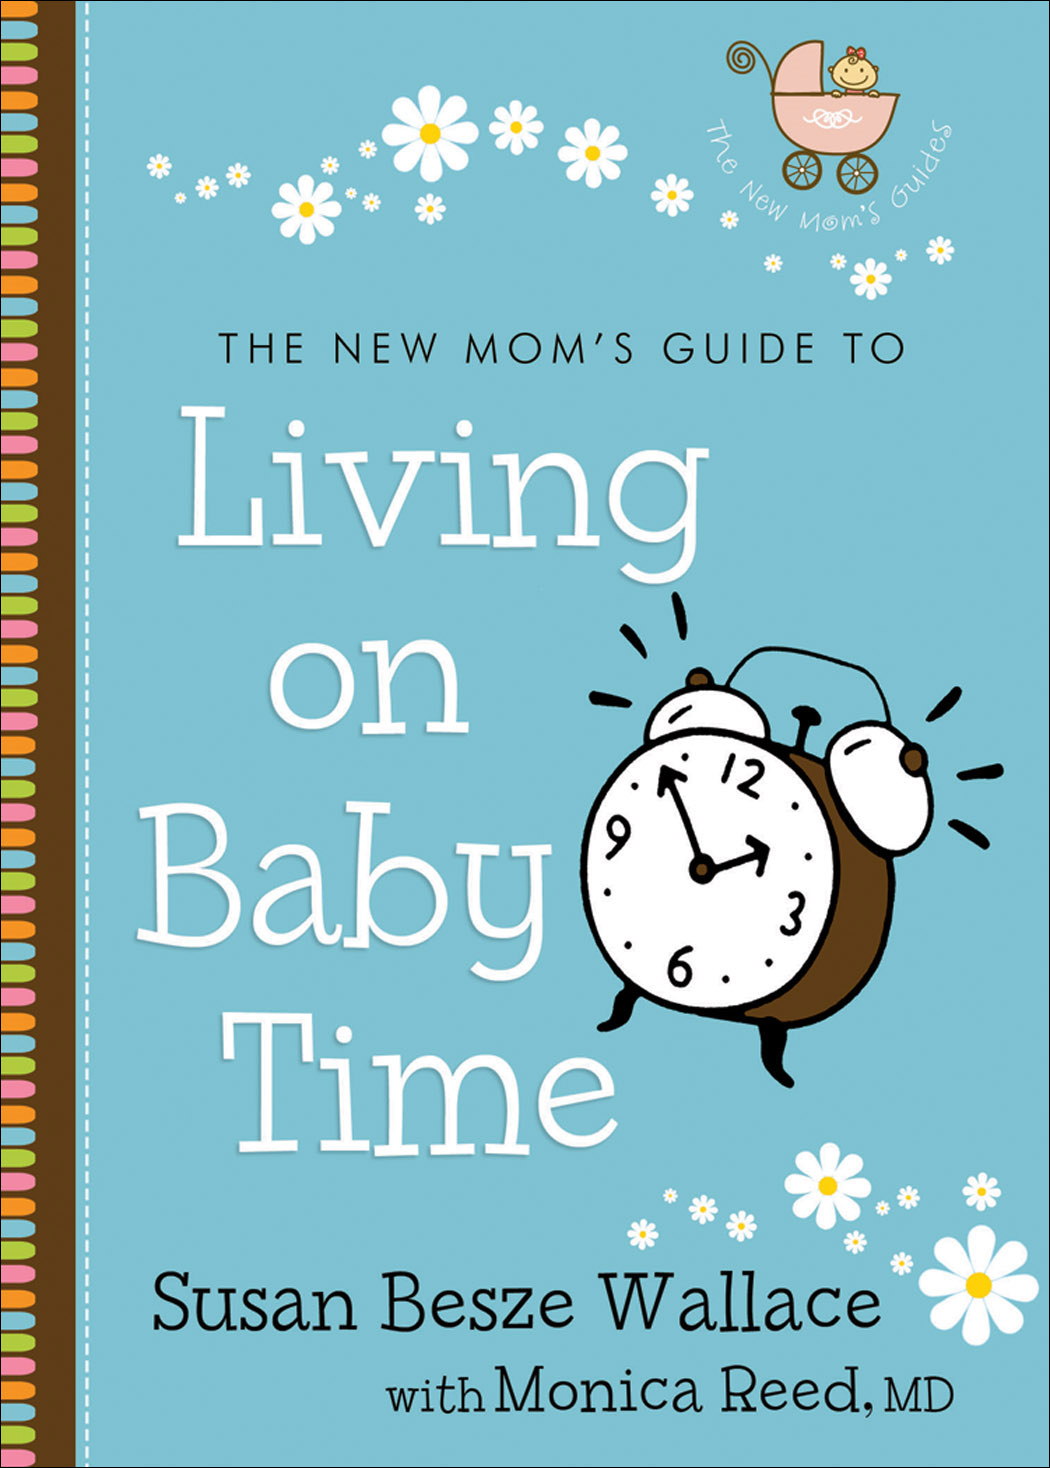 New Mom's Guide to Living on Baby Time, The (The New Mom's Guides)